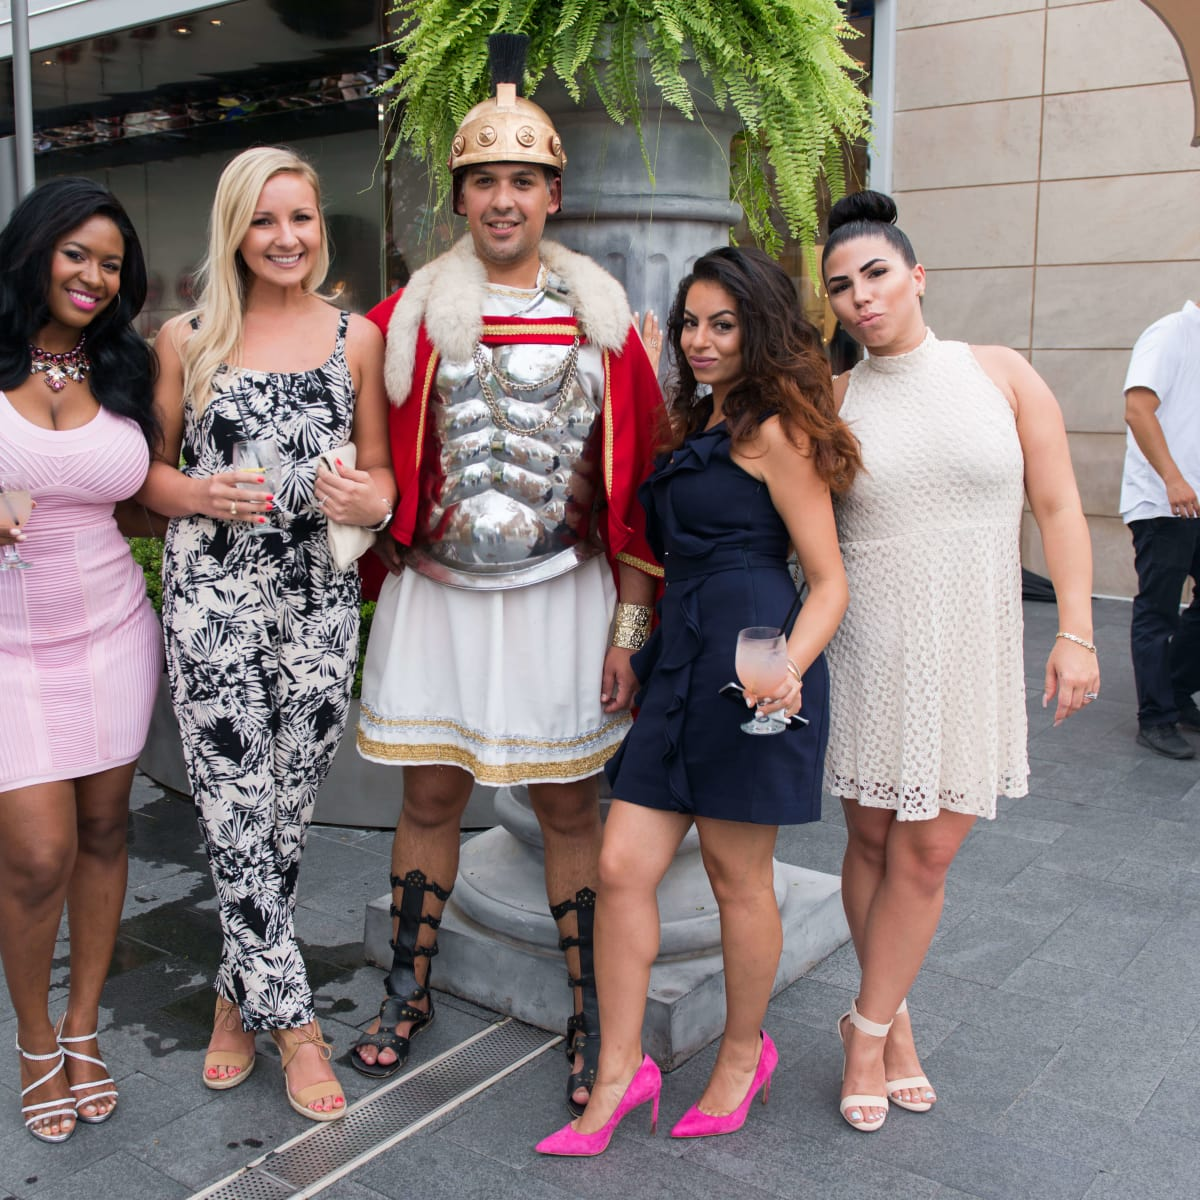 Ben-Hur premiere, Aug. 2016, Atia Willis, Kyle Hassenmiller, Christopher Marquez, Katie Naciri, Ashley Zeigler